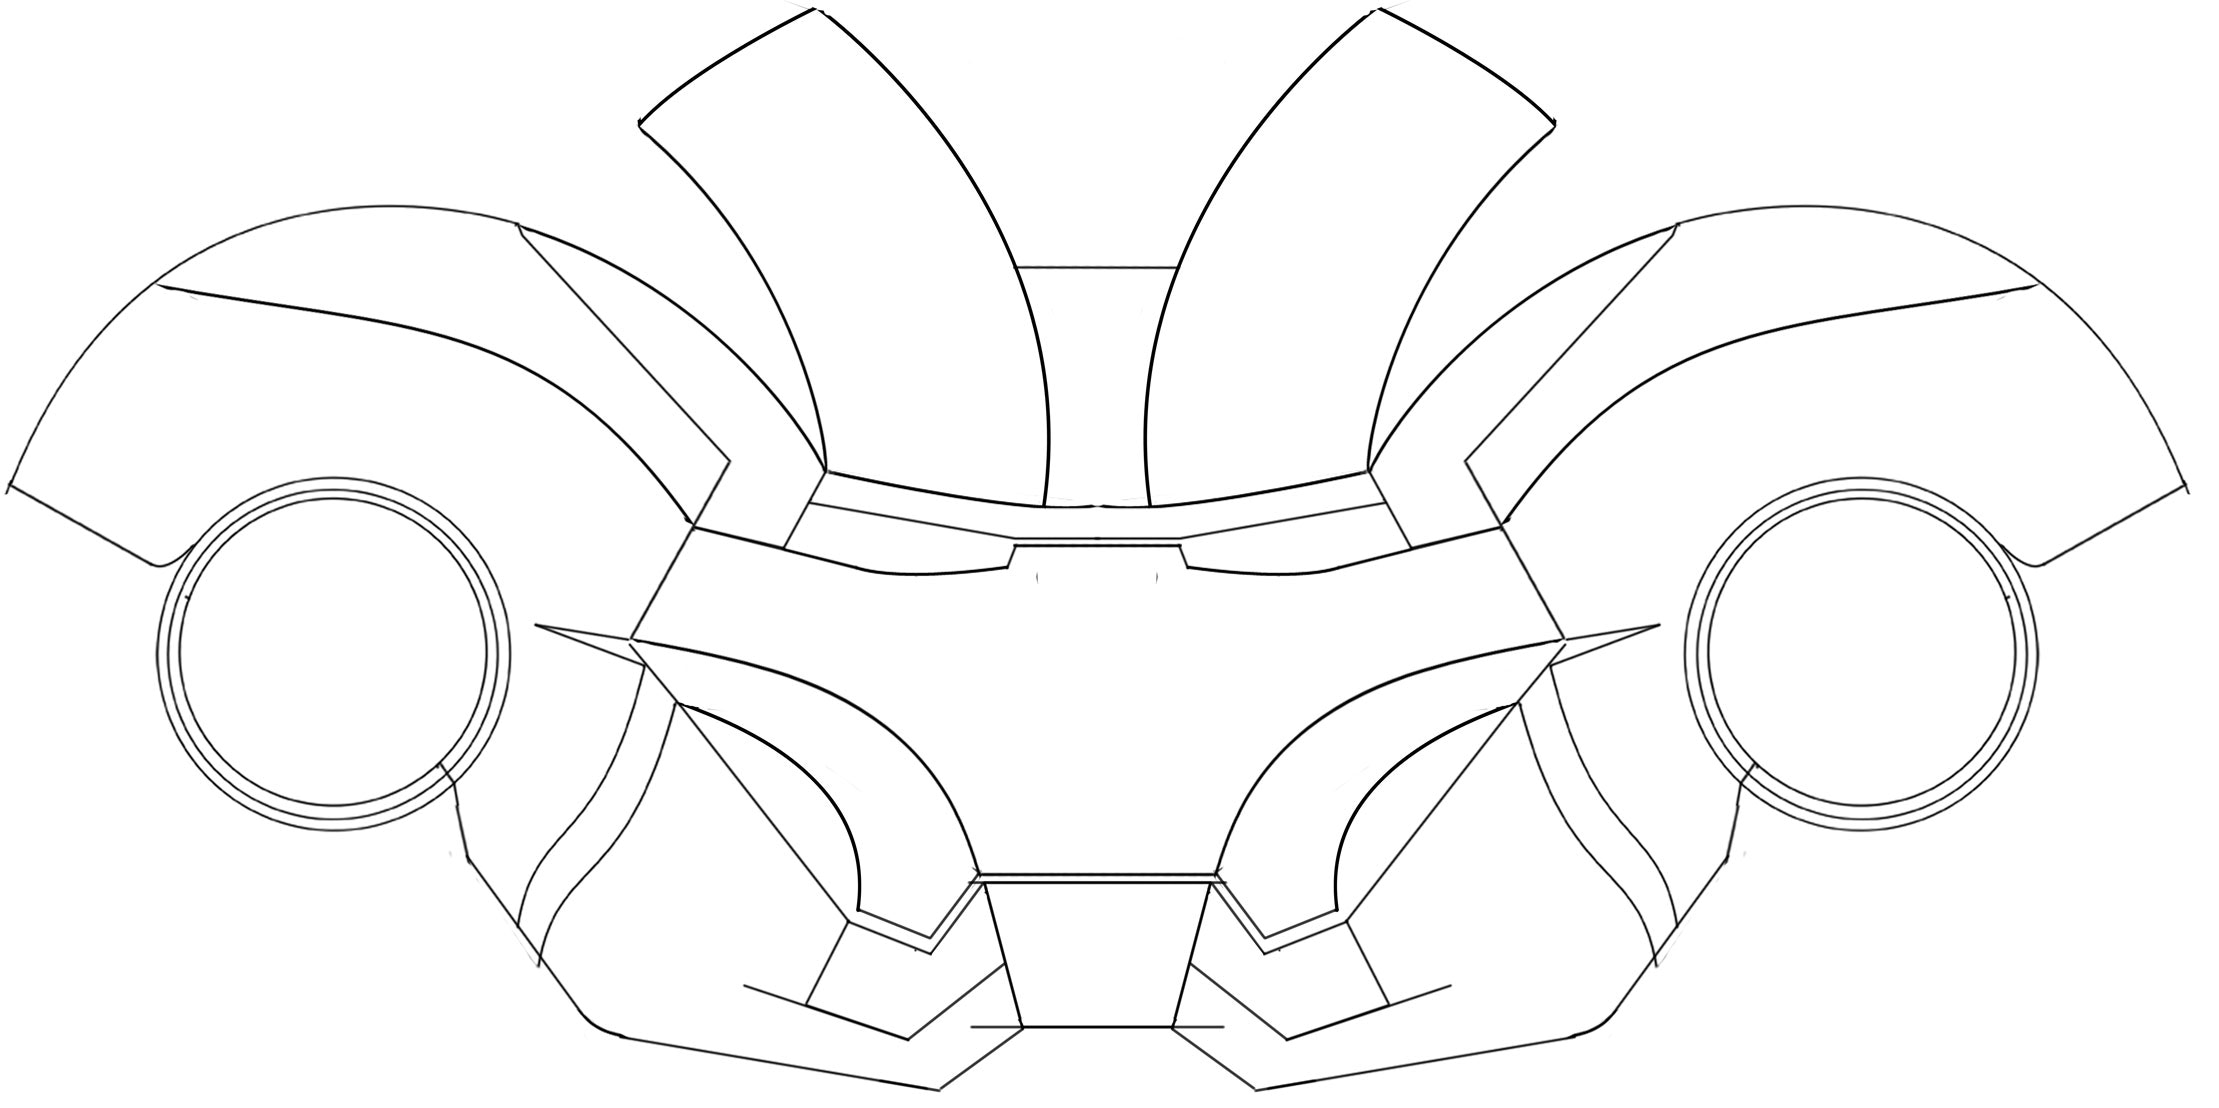 Iron Man Helmet Drawing At Getdrawings Free For Personal Use